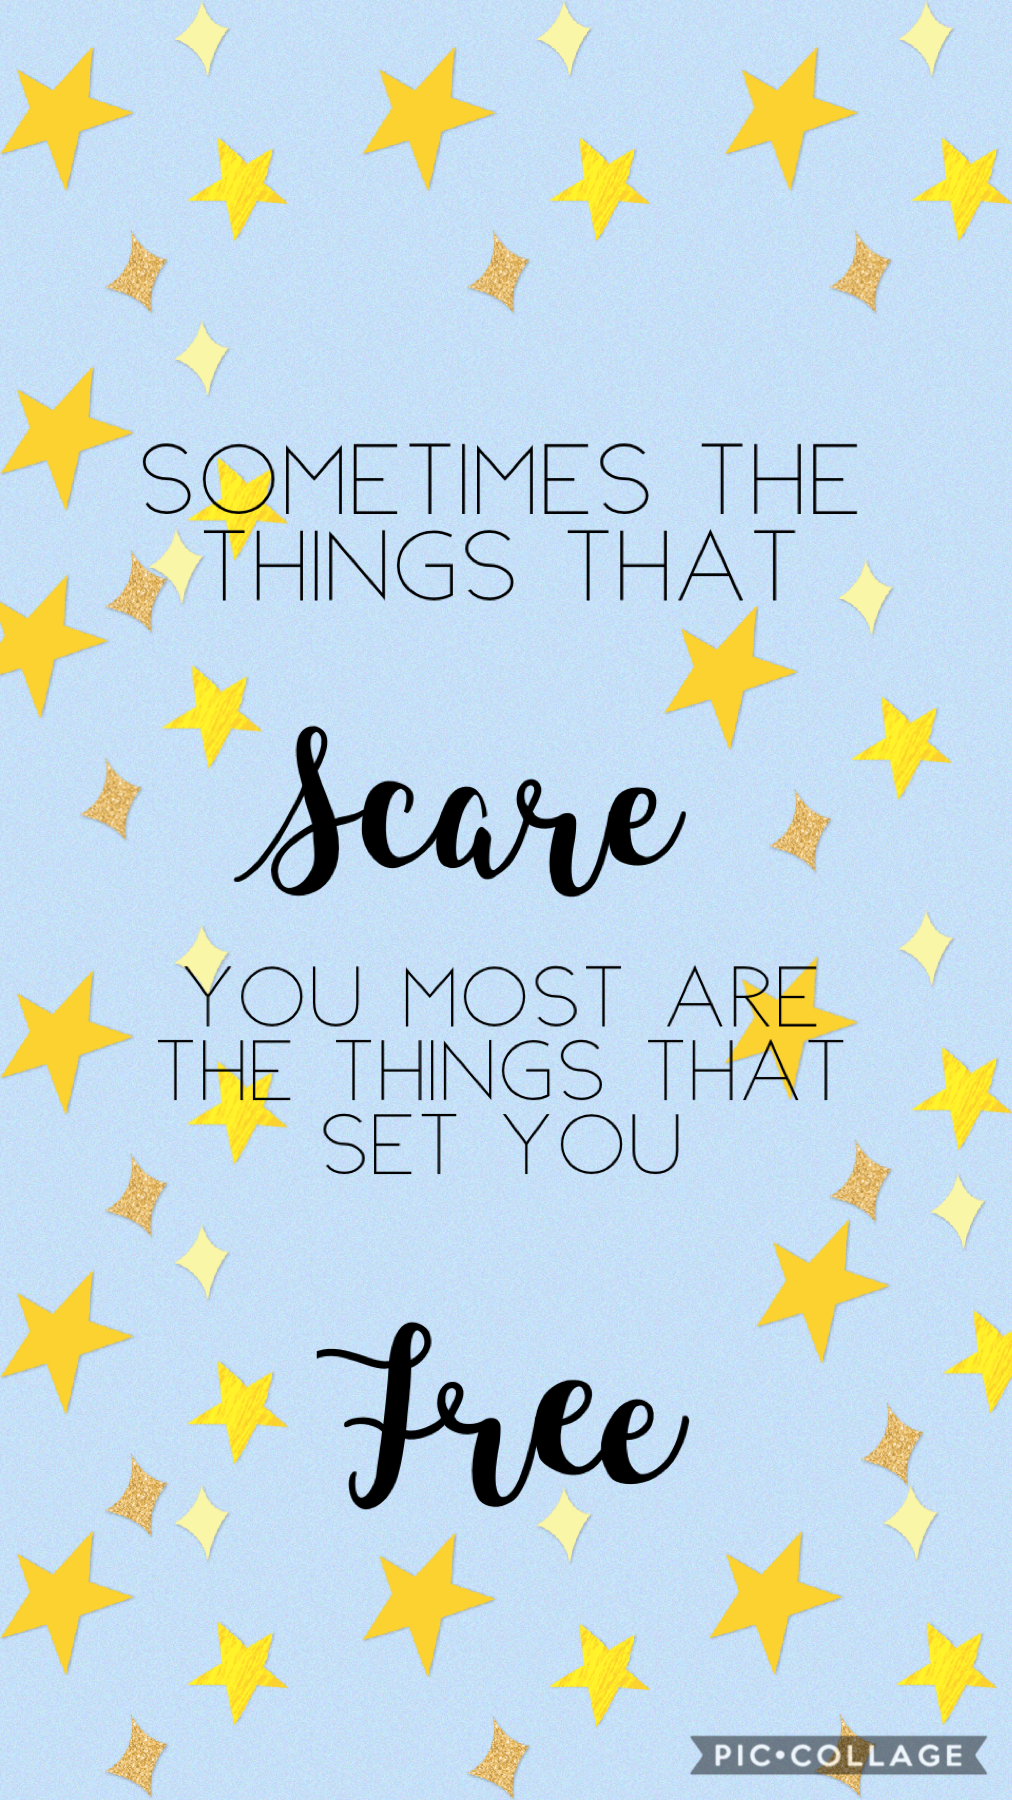 Sometime the things that set you  free